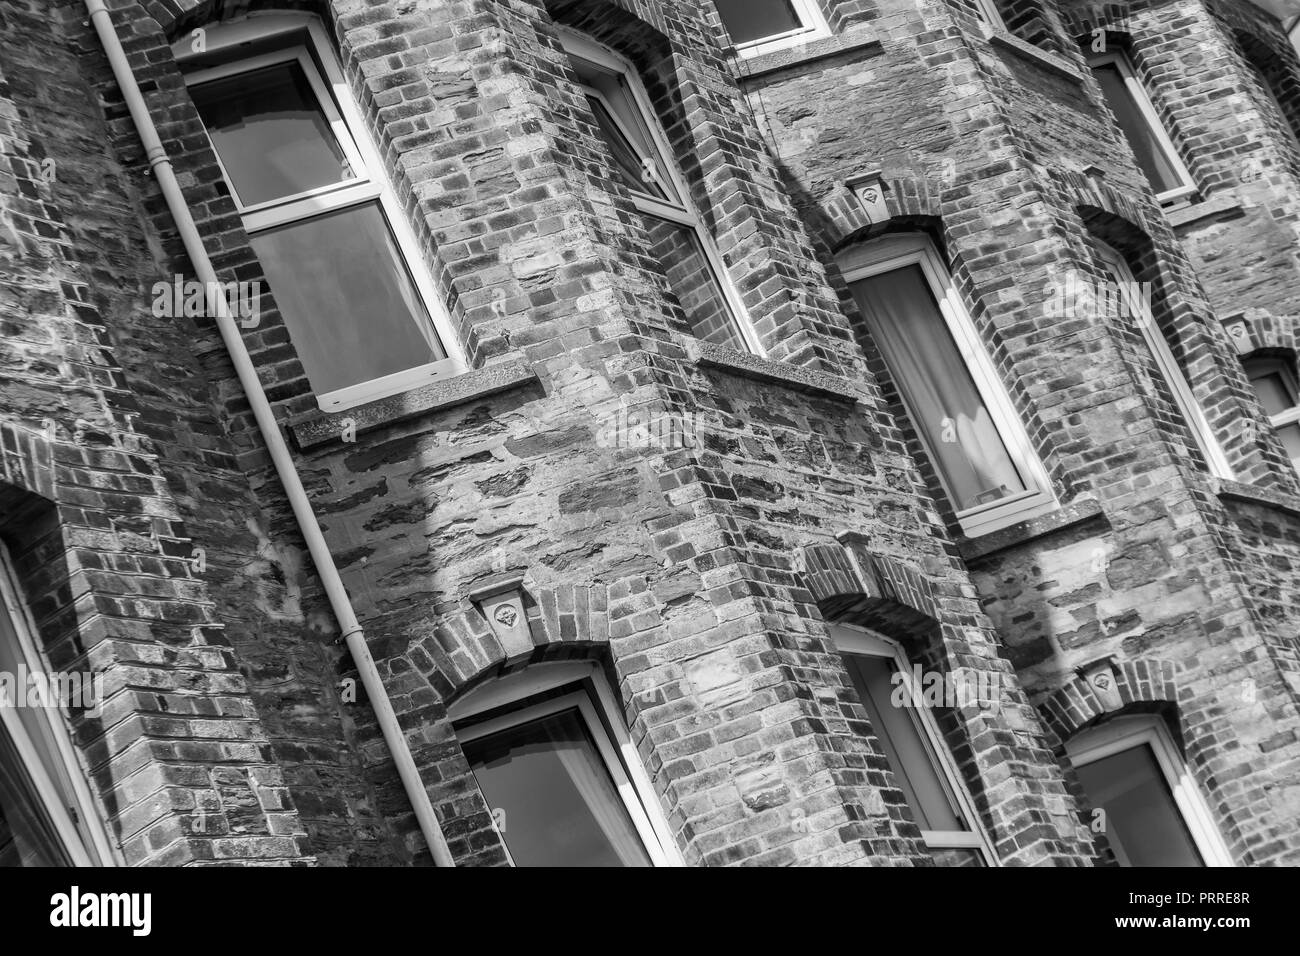 Rear part of block of flats in Newquay, Cornwall. Metaphor for 'generation rent', and getting on the housing ladder, rent concept. Stock Photo